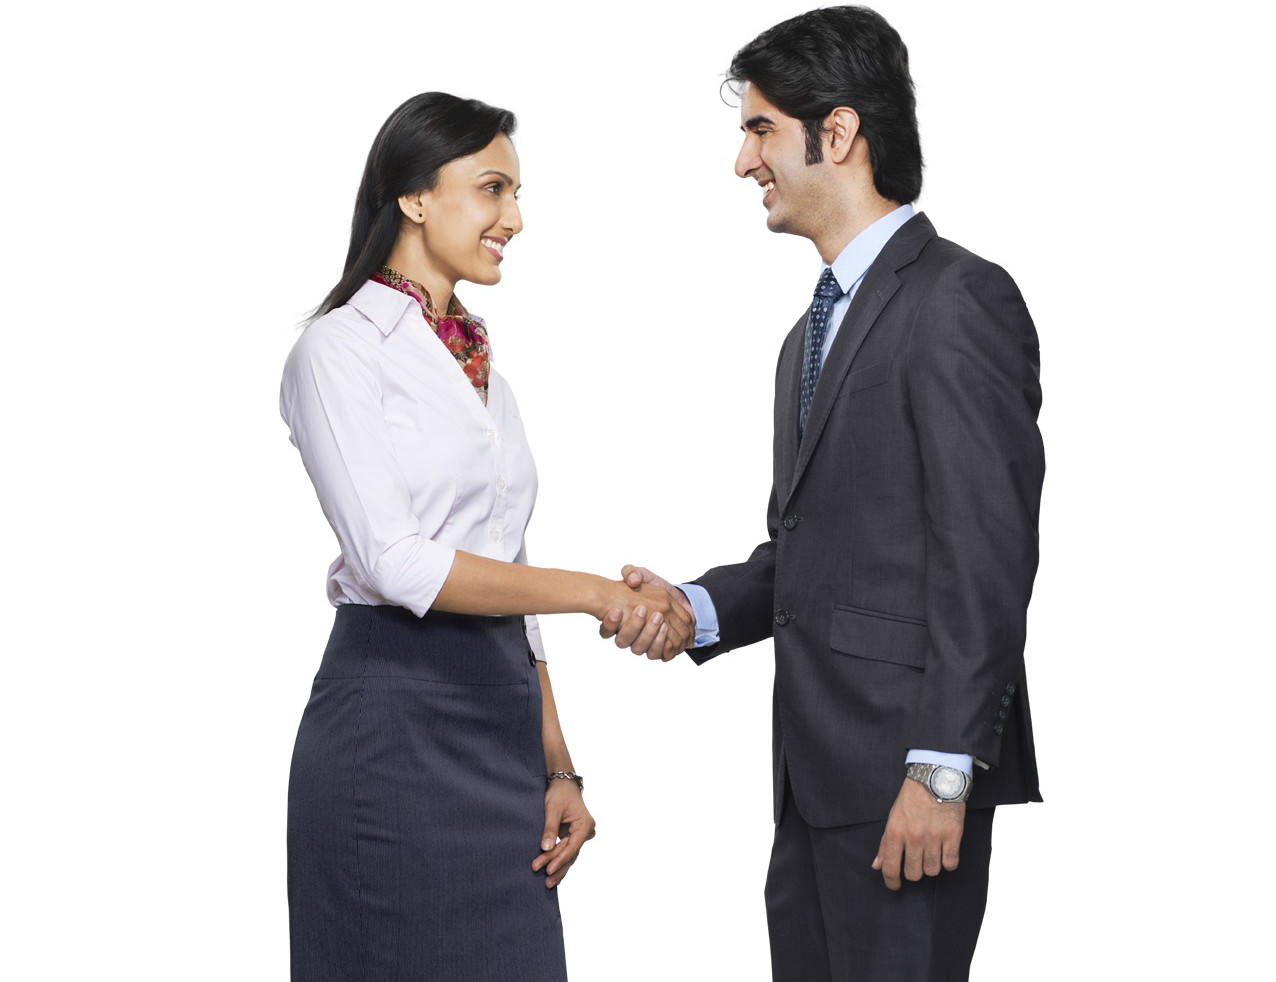 3 keys to preparing for your interview in 2014